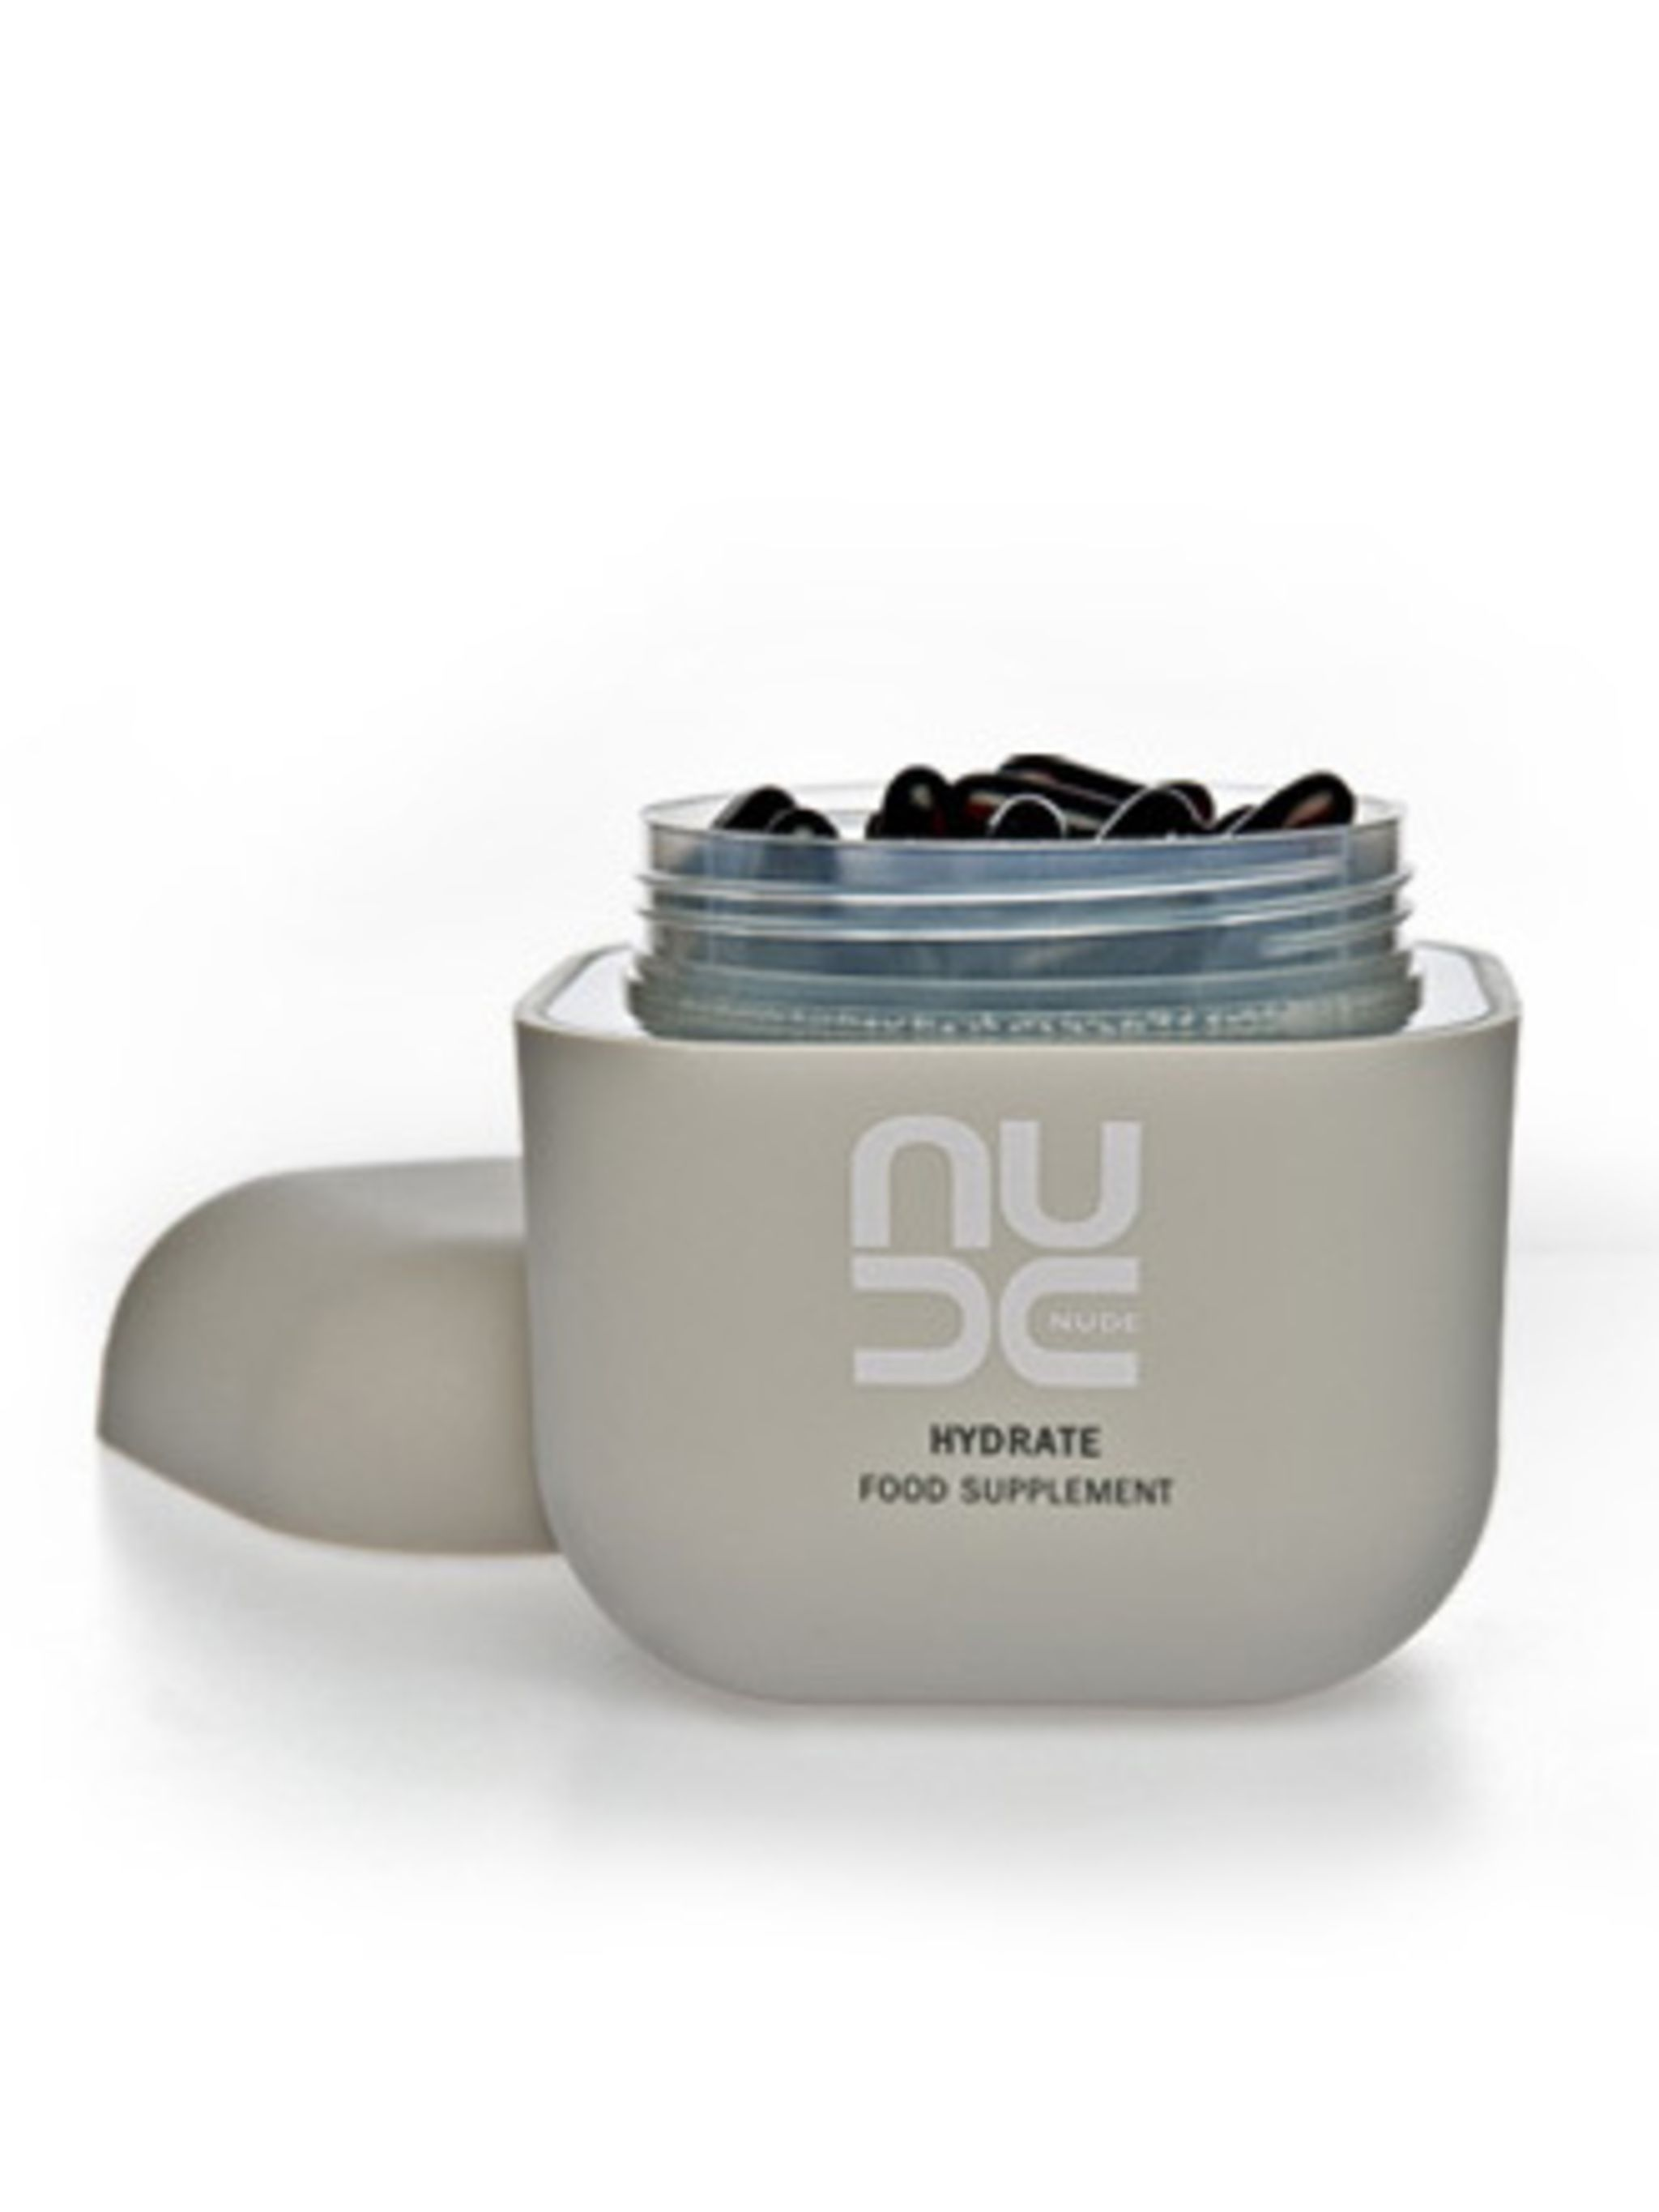 """<p>Nourish your skin from the inside out. Nude's food supplements really do work. Start taking these a week or two before your trip, during and after.</p><p>Hydrate Food Supplement, £52 by <a href=""""http://www.nudeskincare.com/products/supplements/hydrate_"""